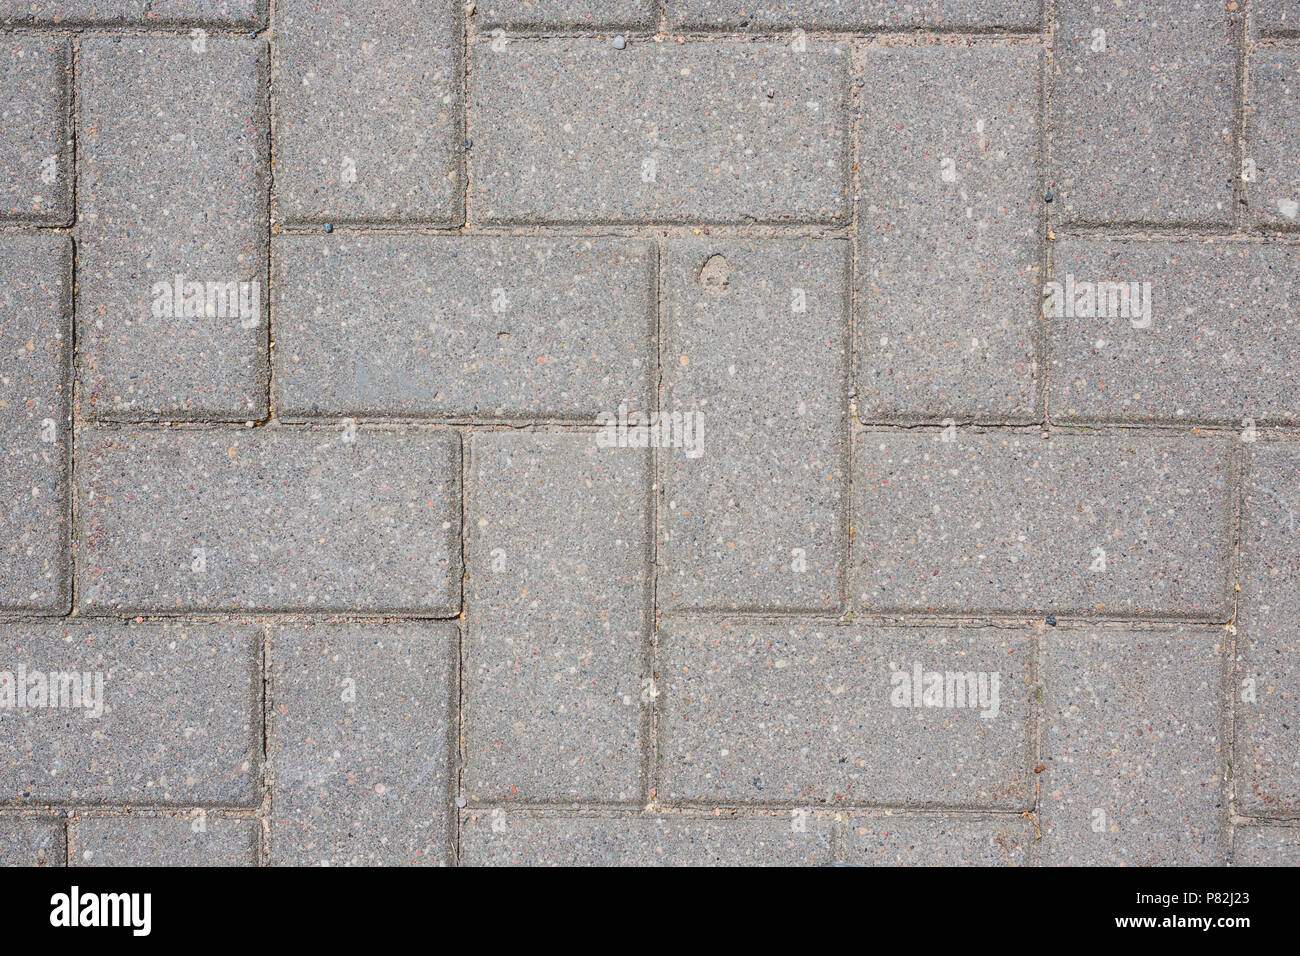 Boden Fliesen Muster Sidewalk Crack Stockfotos And Sidewalk Crack Bilder Alamy